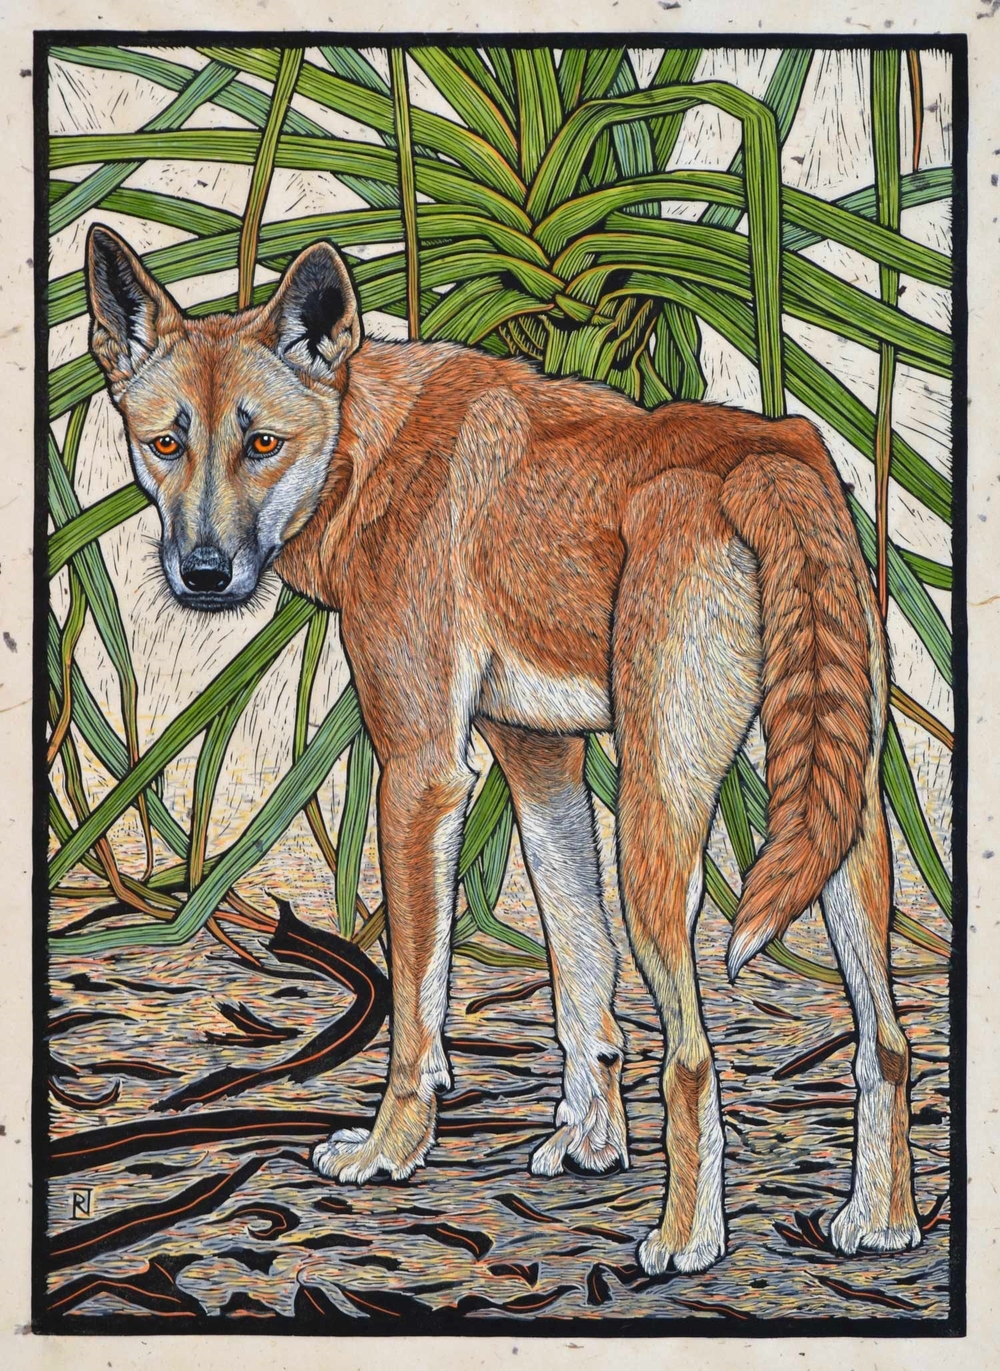 Dingo, Northern Territory  71 x 51 cm    Edition of 50  Hand coloured linocut on handmade Japanese paper  $1,700